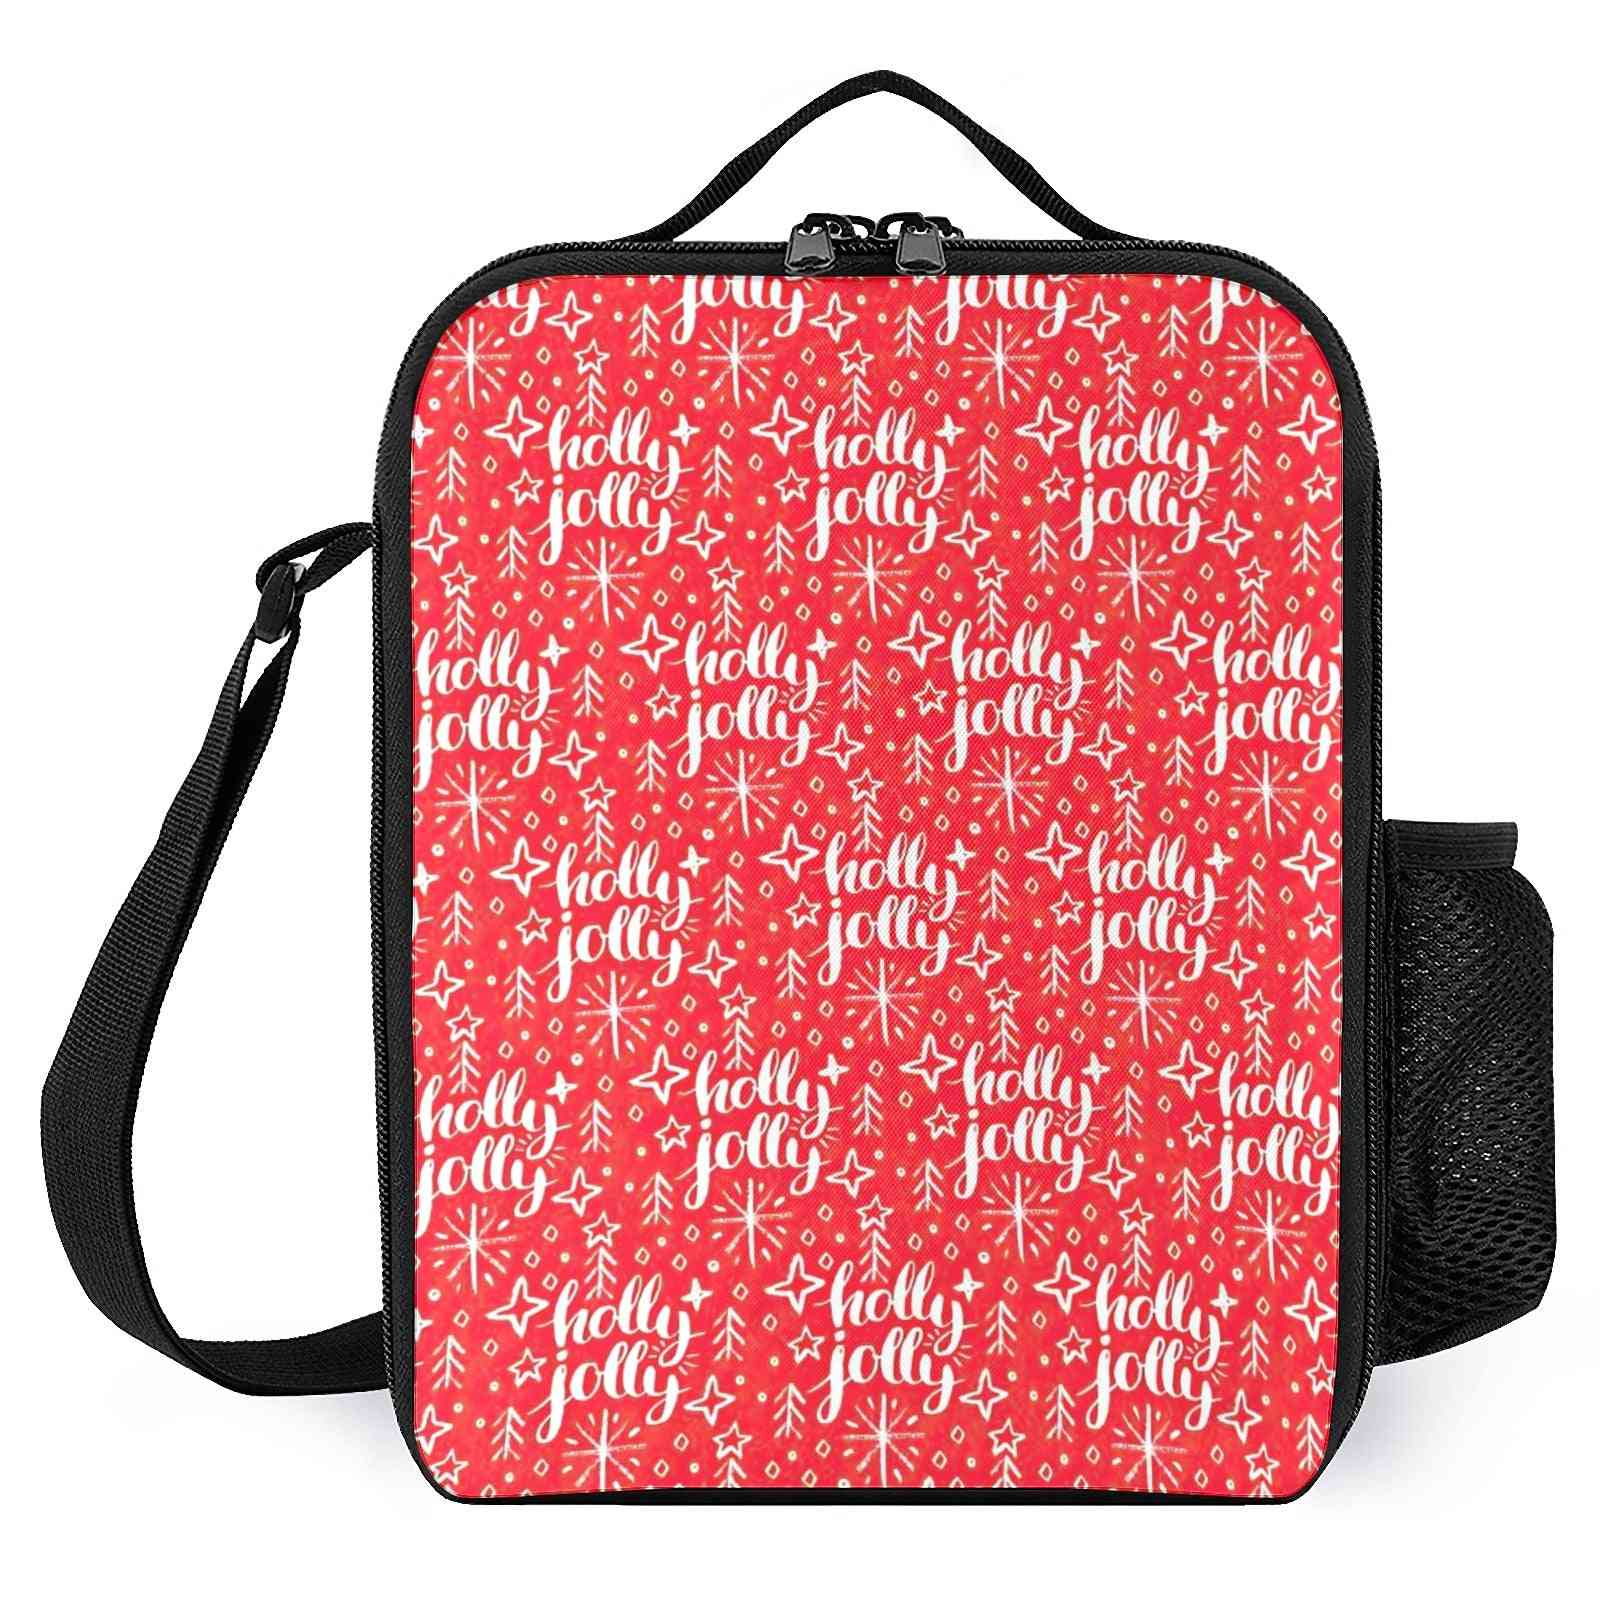 Christmas Pattern, Holly Jolly Printed Lunch Bags